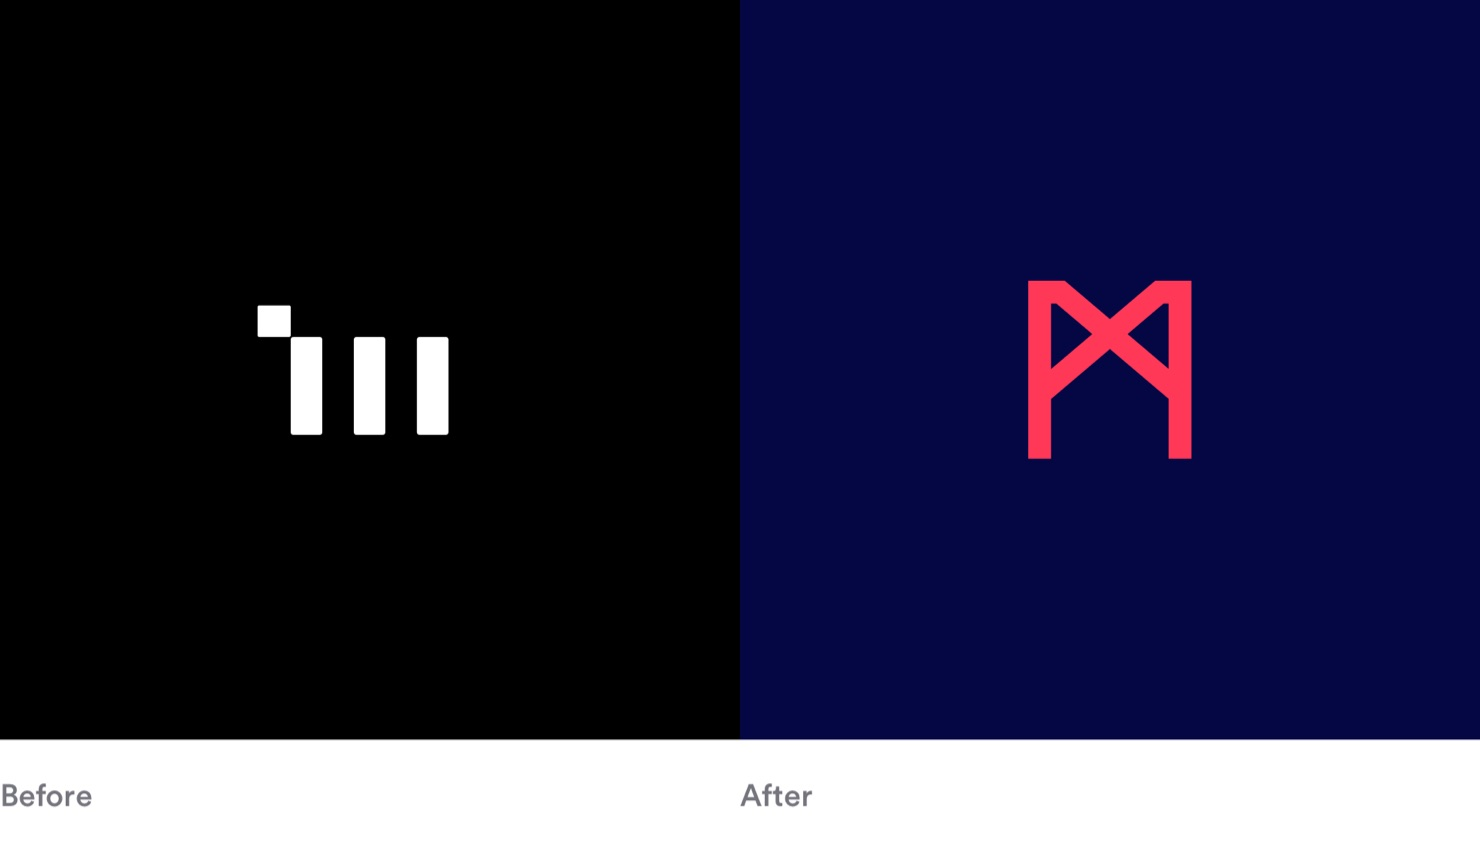 memory-before-after@2x